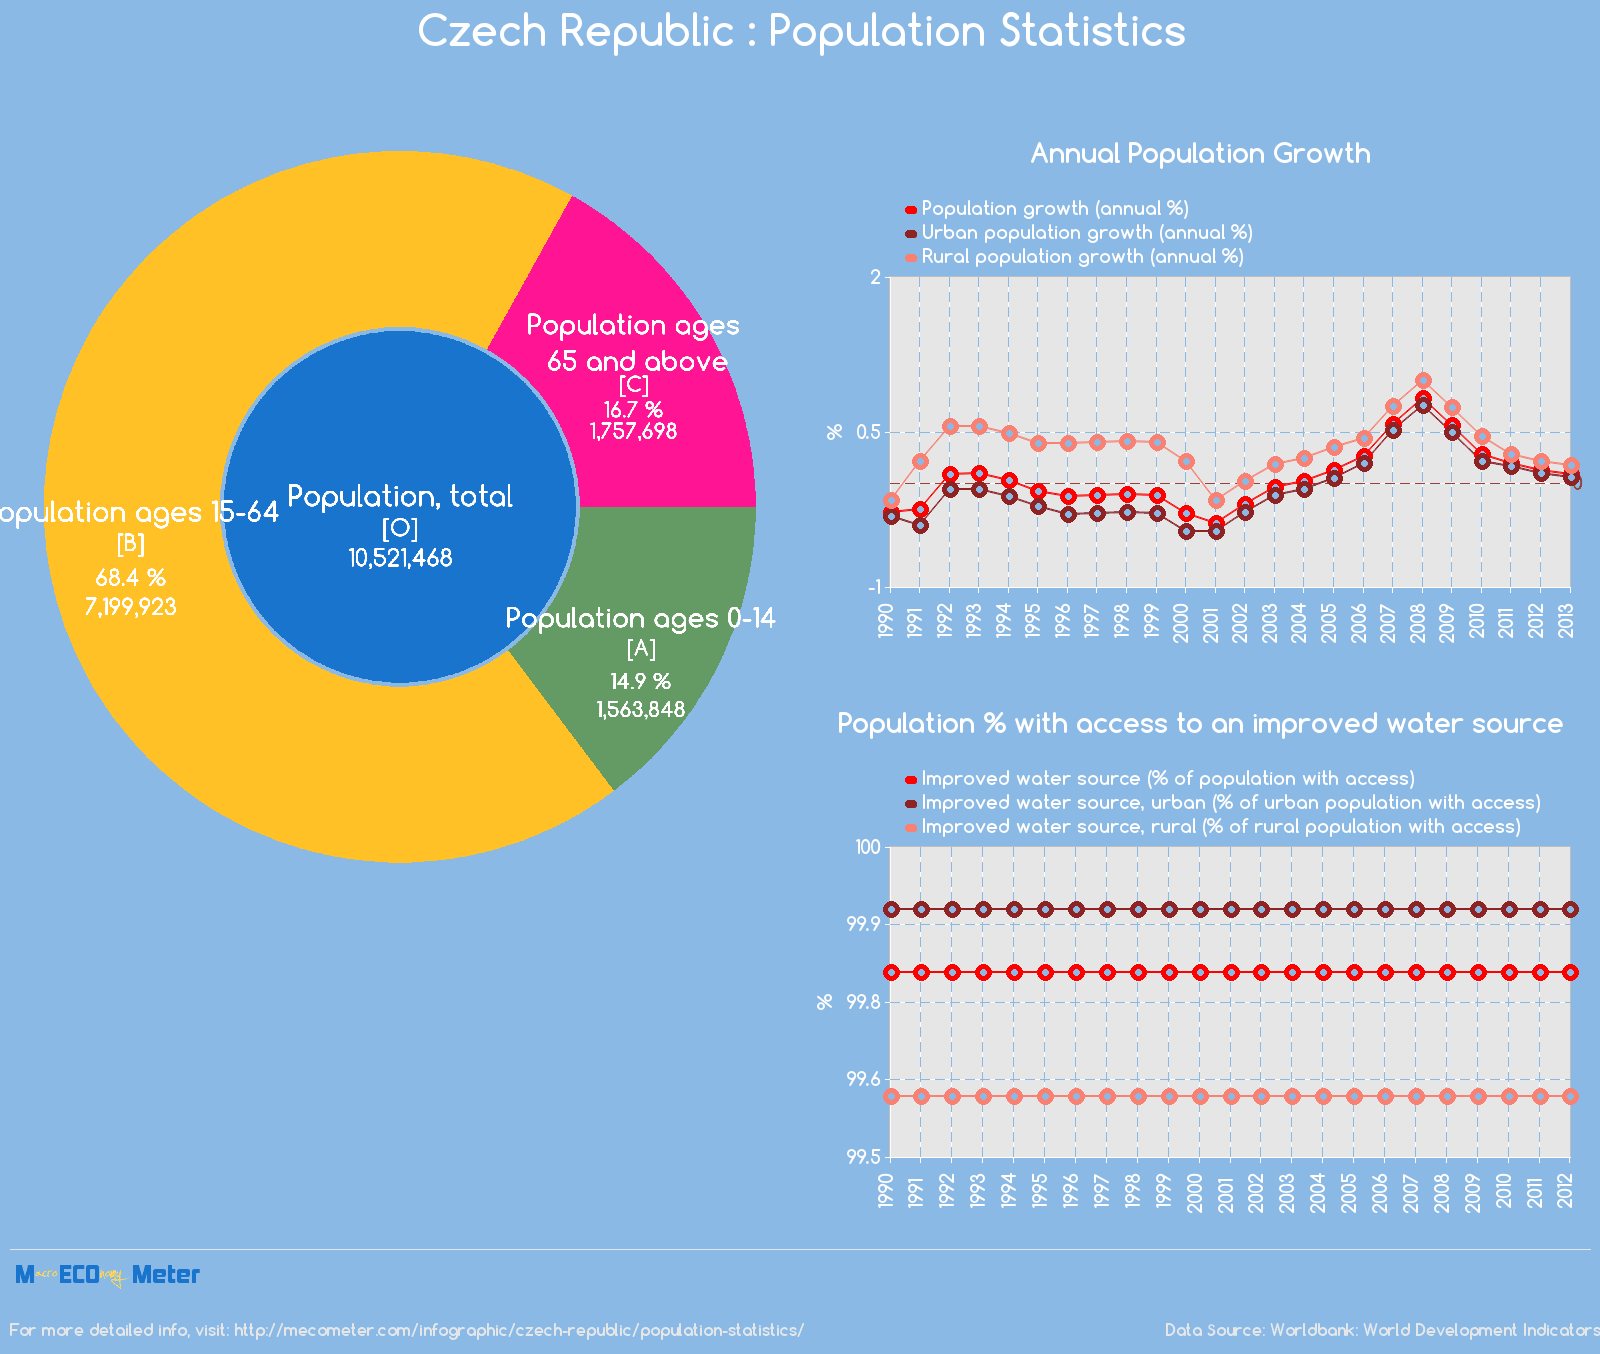 Czech Republic : Population Statistics